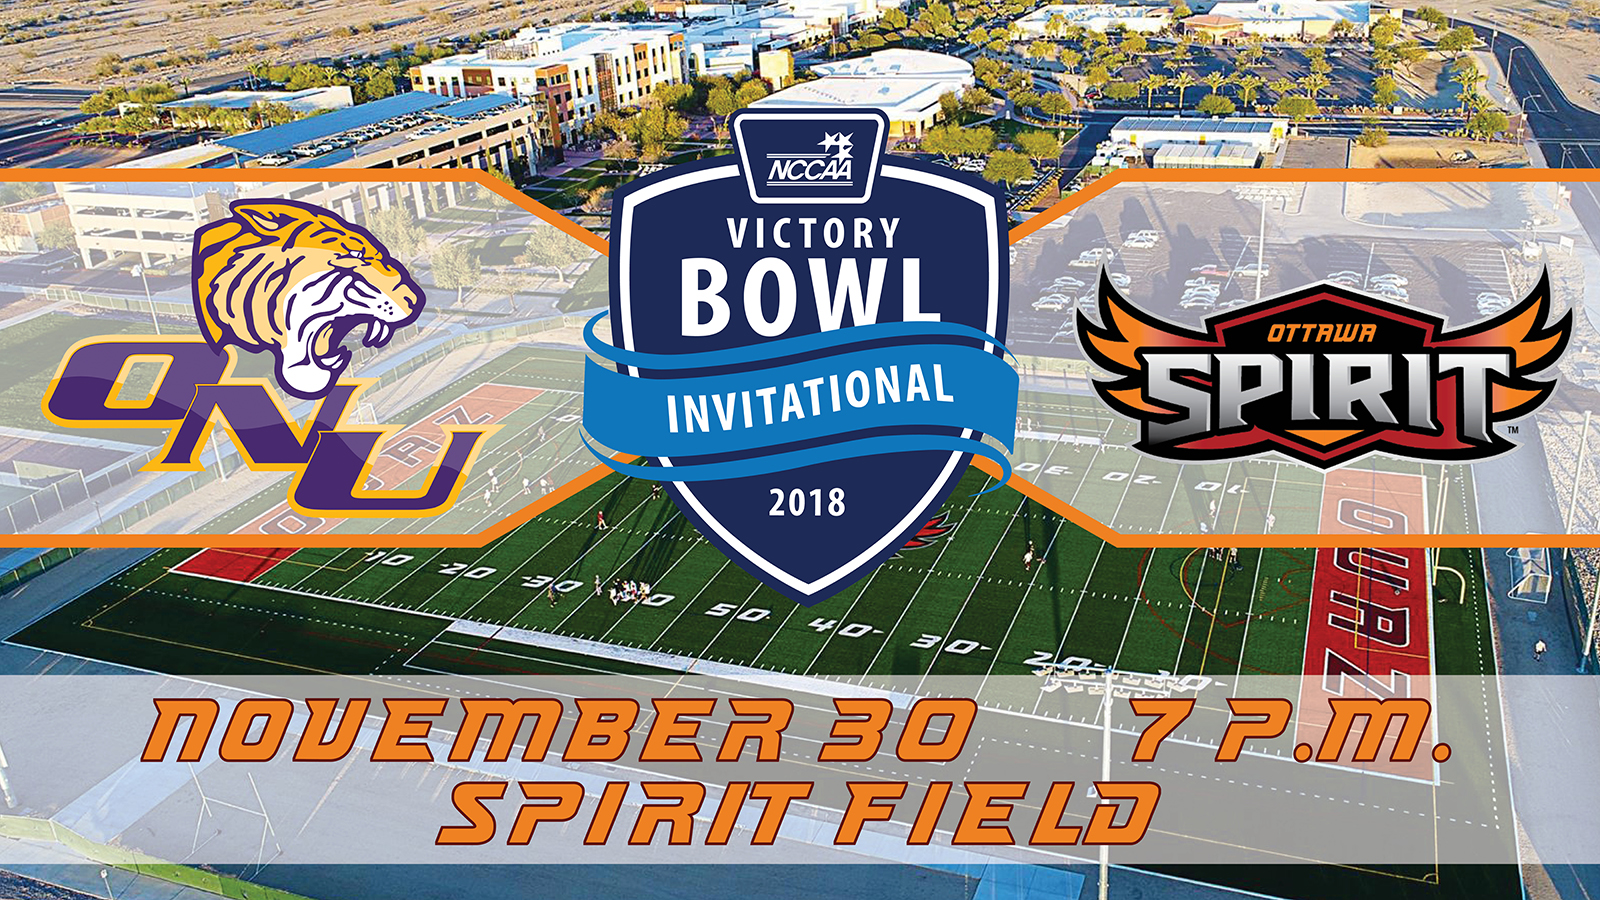 d57f2532 OUAZ to Host Olivet Nazarene in NCCAA Victory Bowl Invitational ...